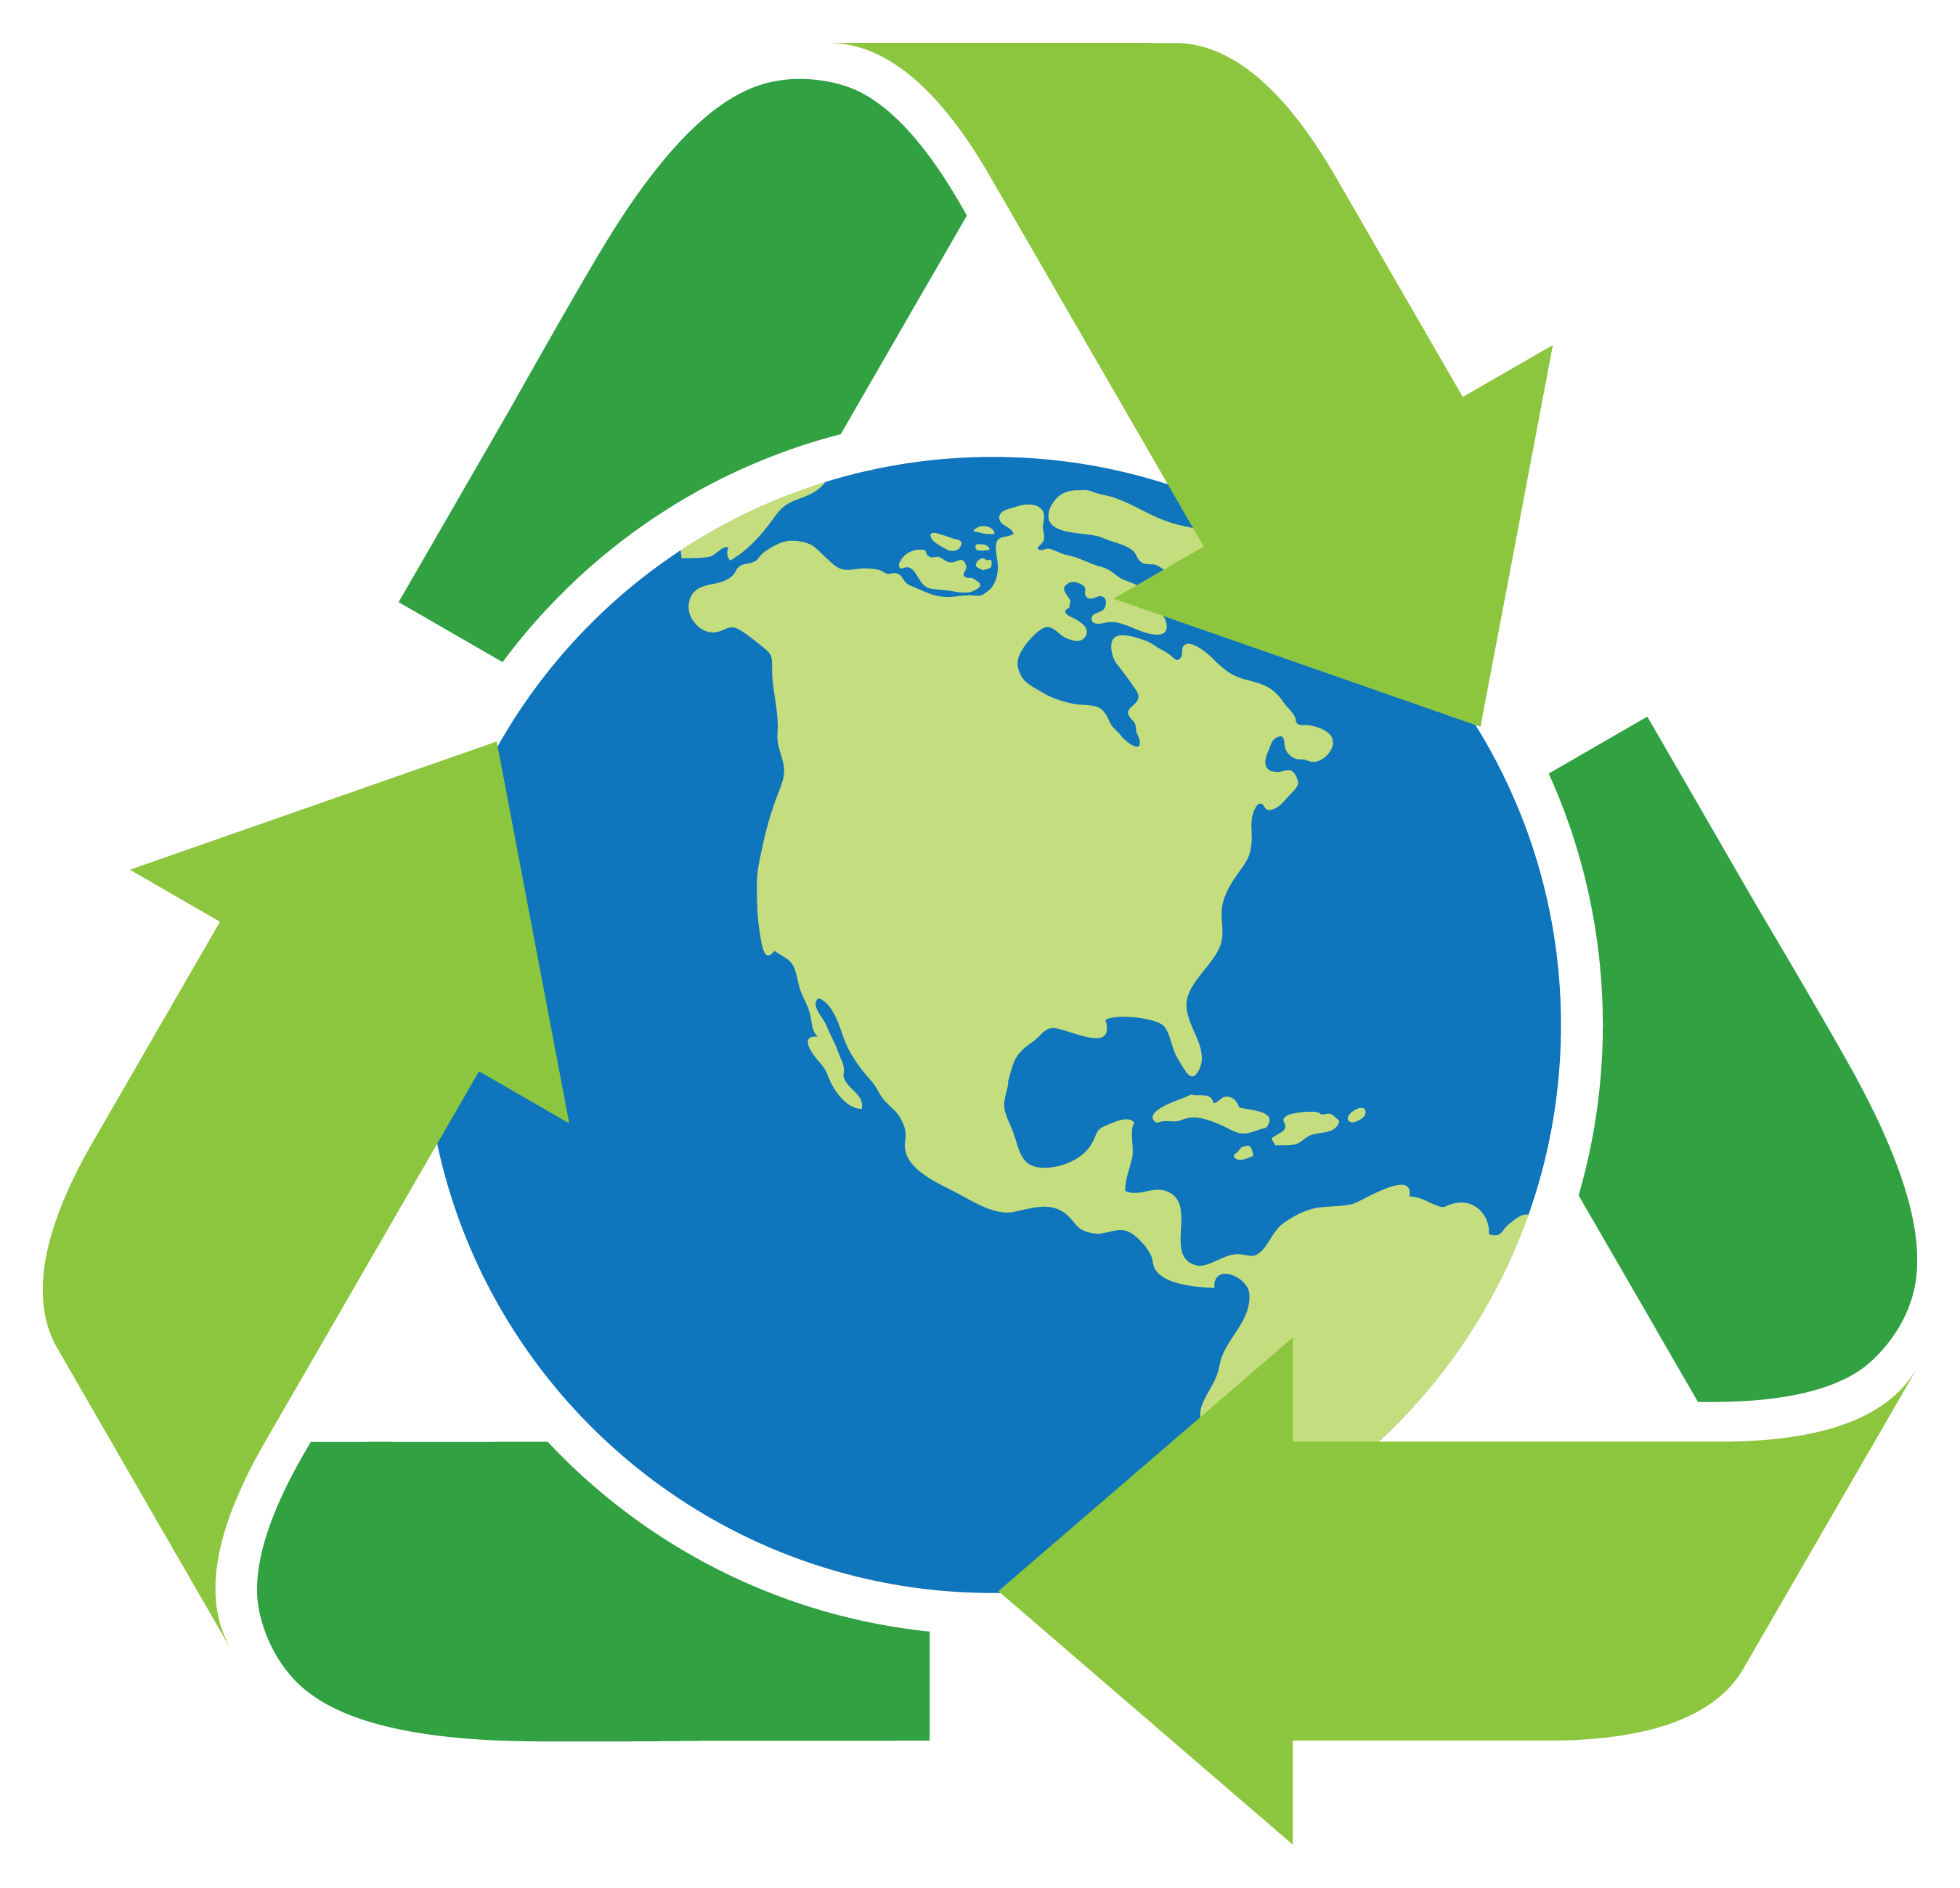 Recycle.png 2 699 × 2 600 Bildepunkter - Recycle PNG